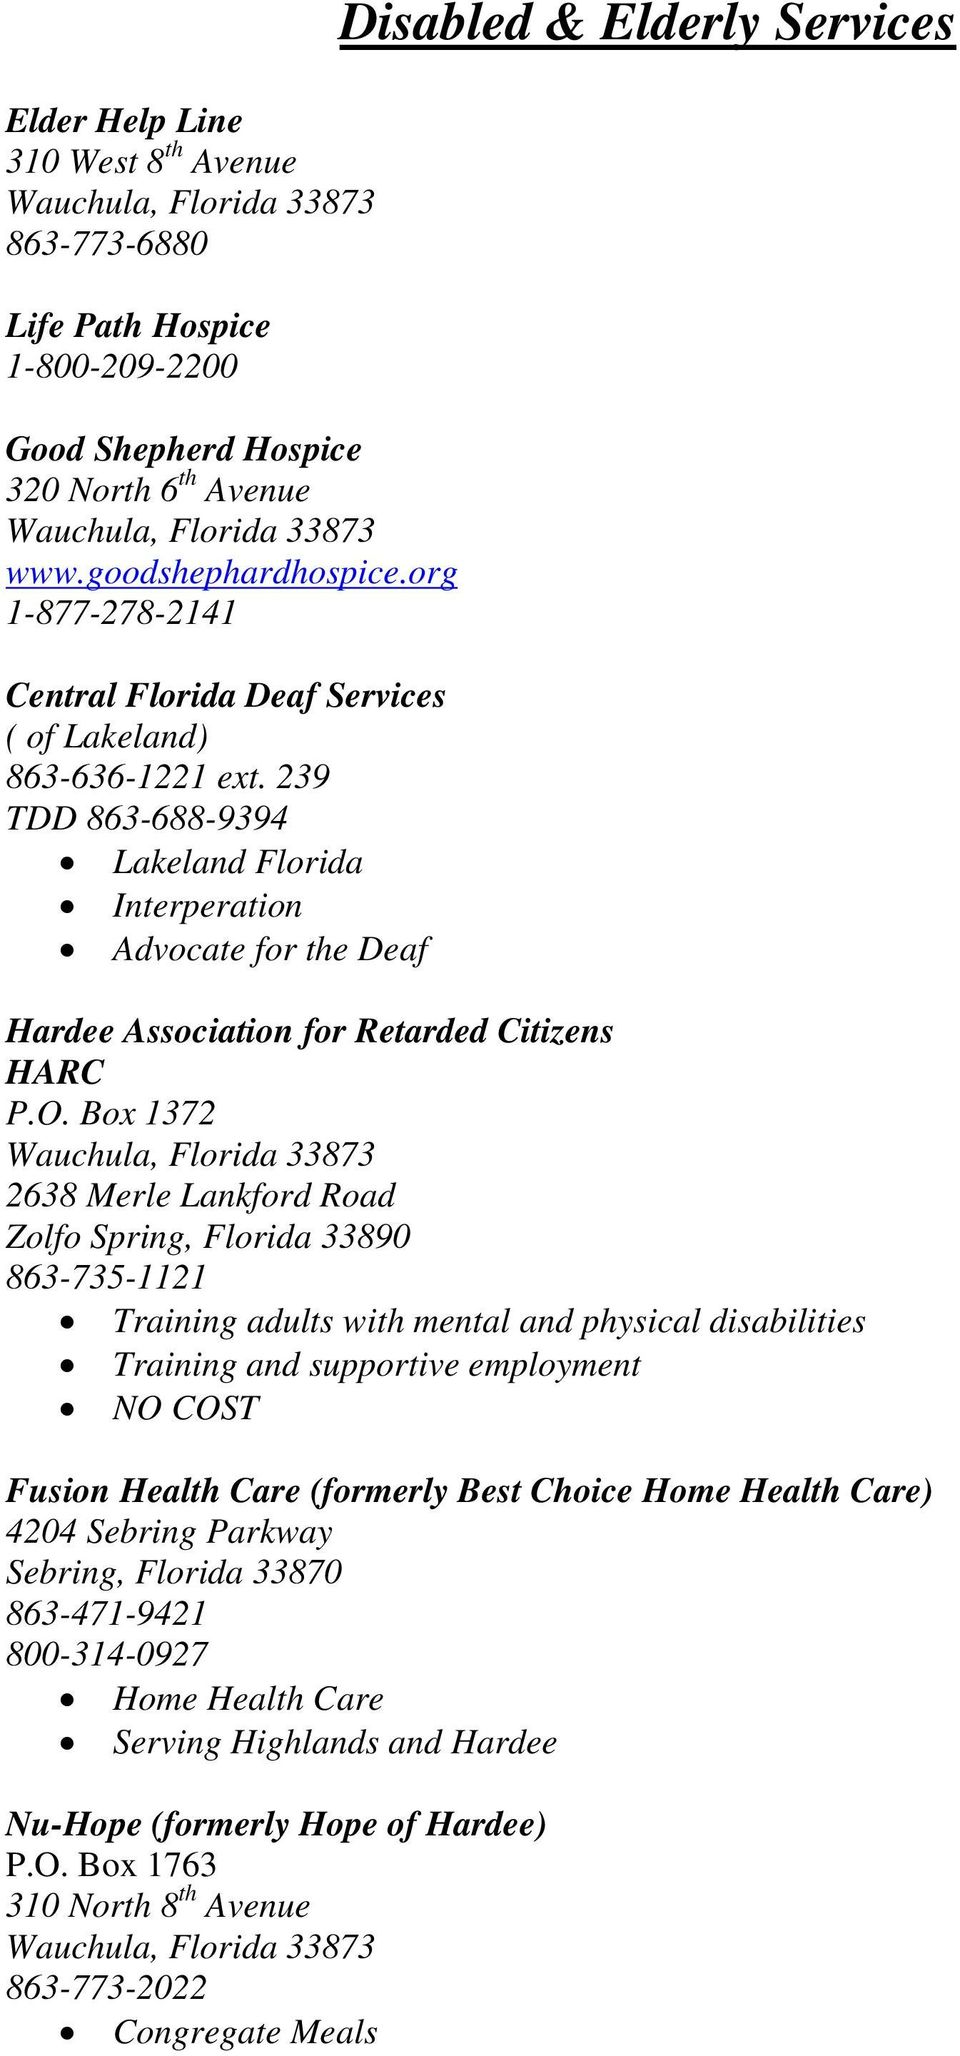 239 TDD 863-688-9394 Lakeland Florida Interperation Advocate for the Deaf Disabled & Elderly Services Hardee Association for Retarded Citizens HARC P.O.